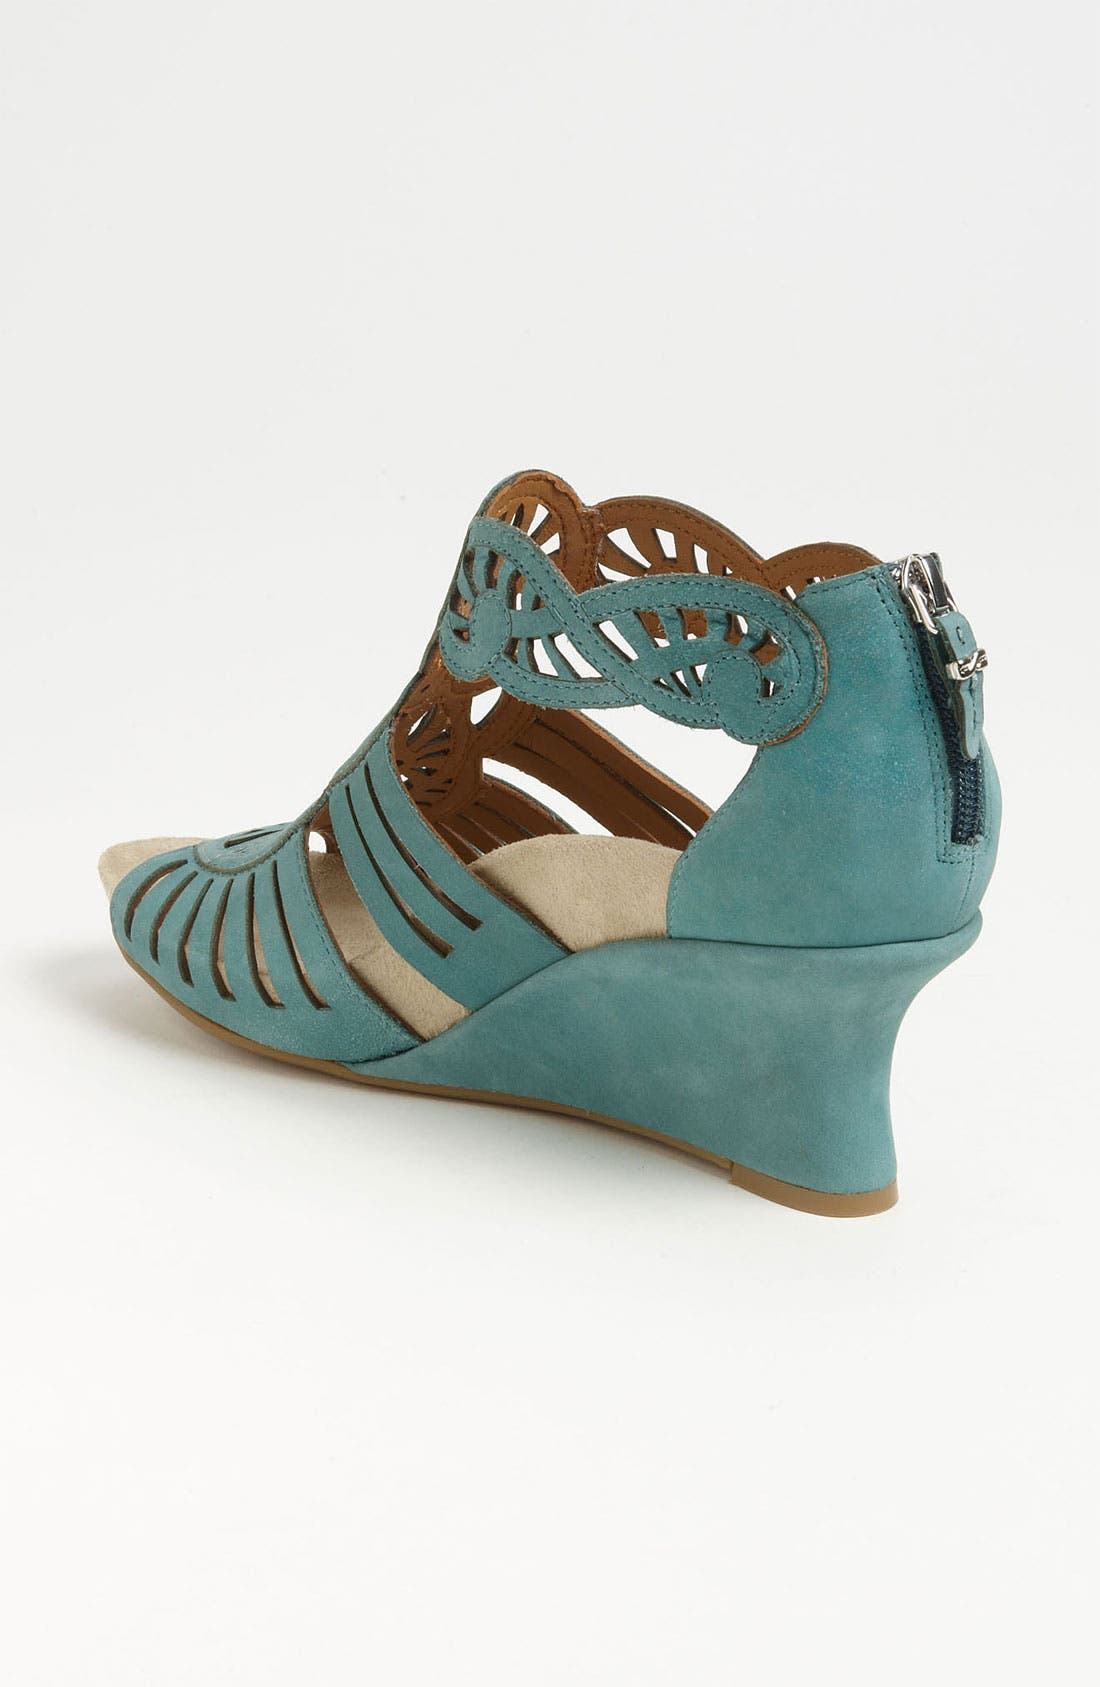 'Caradonna' Sandal,                             Alternate thumbnail 2, color,                             Light Teal